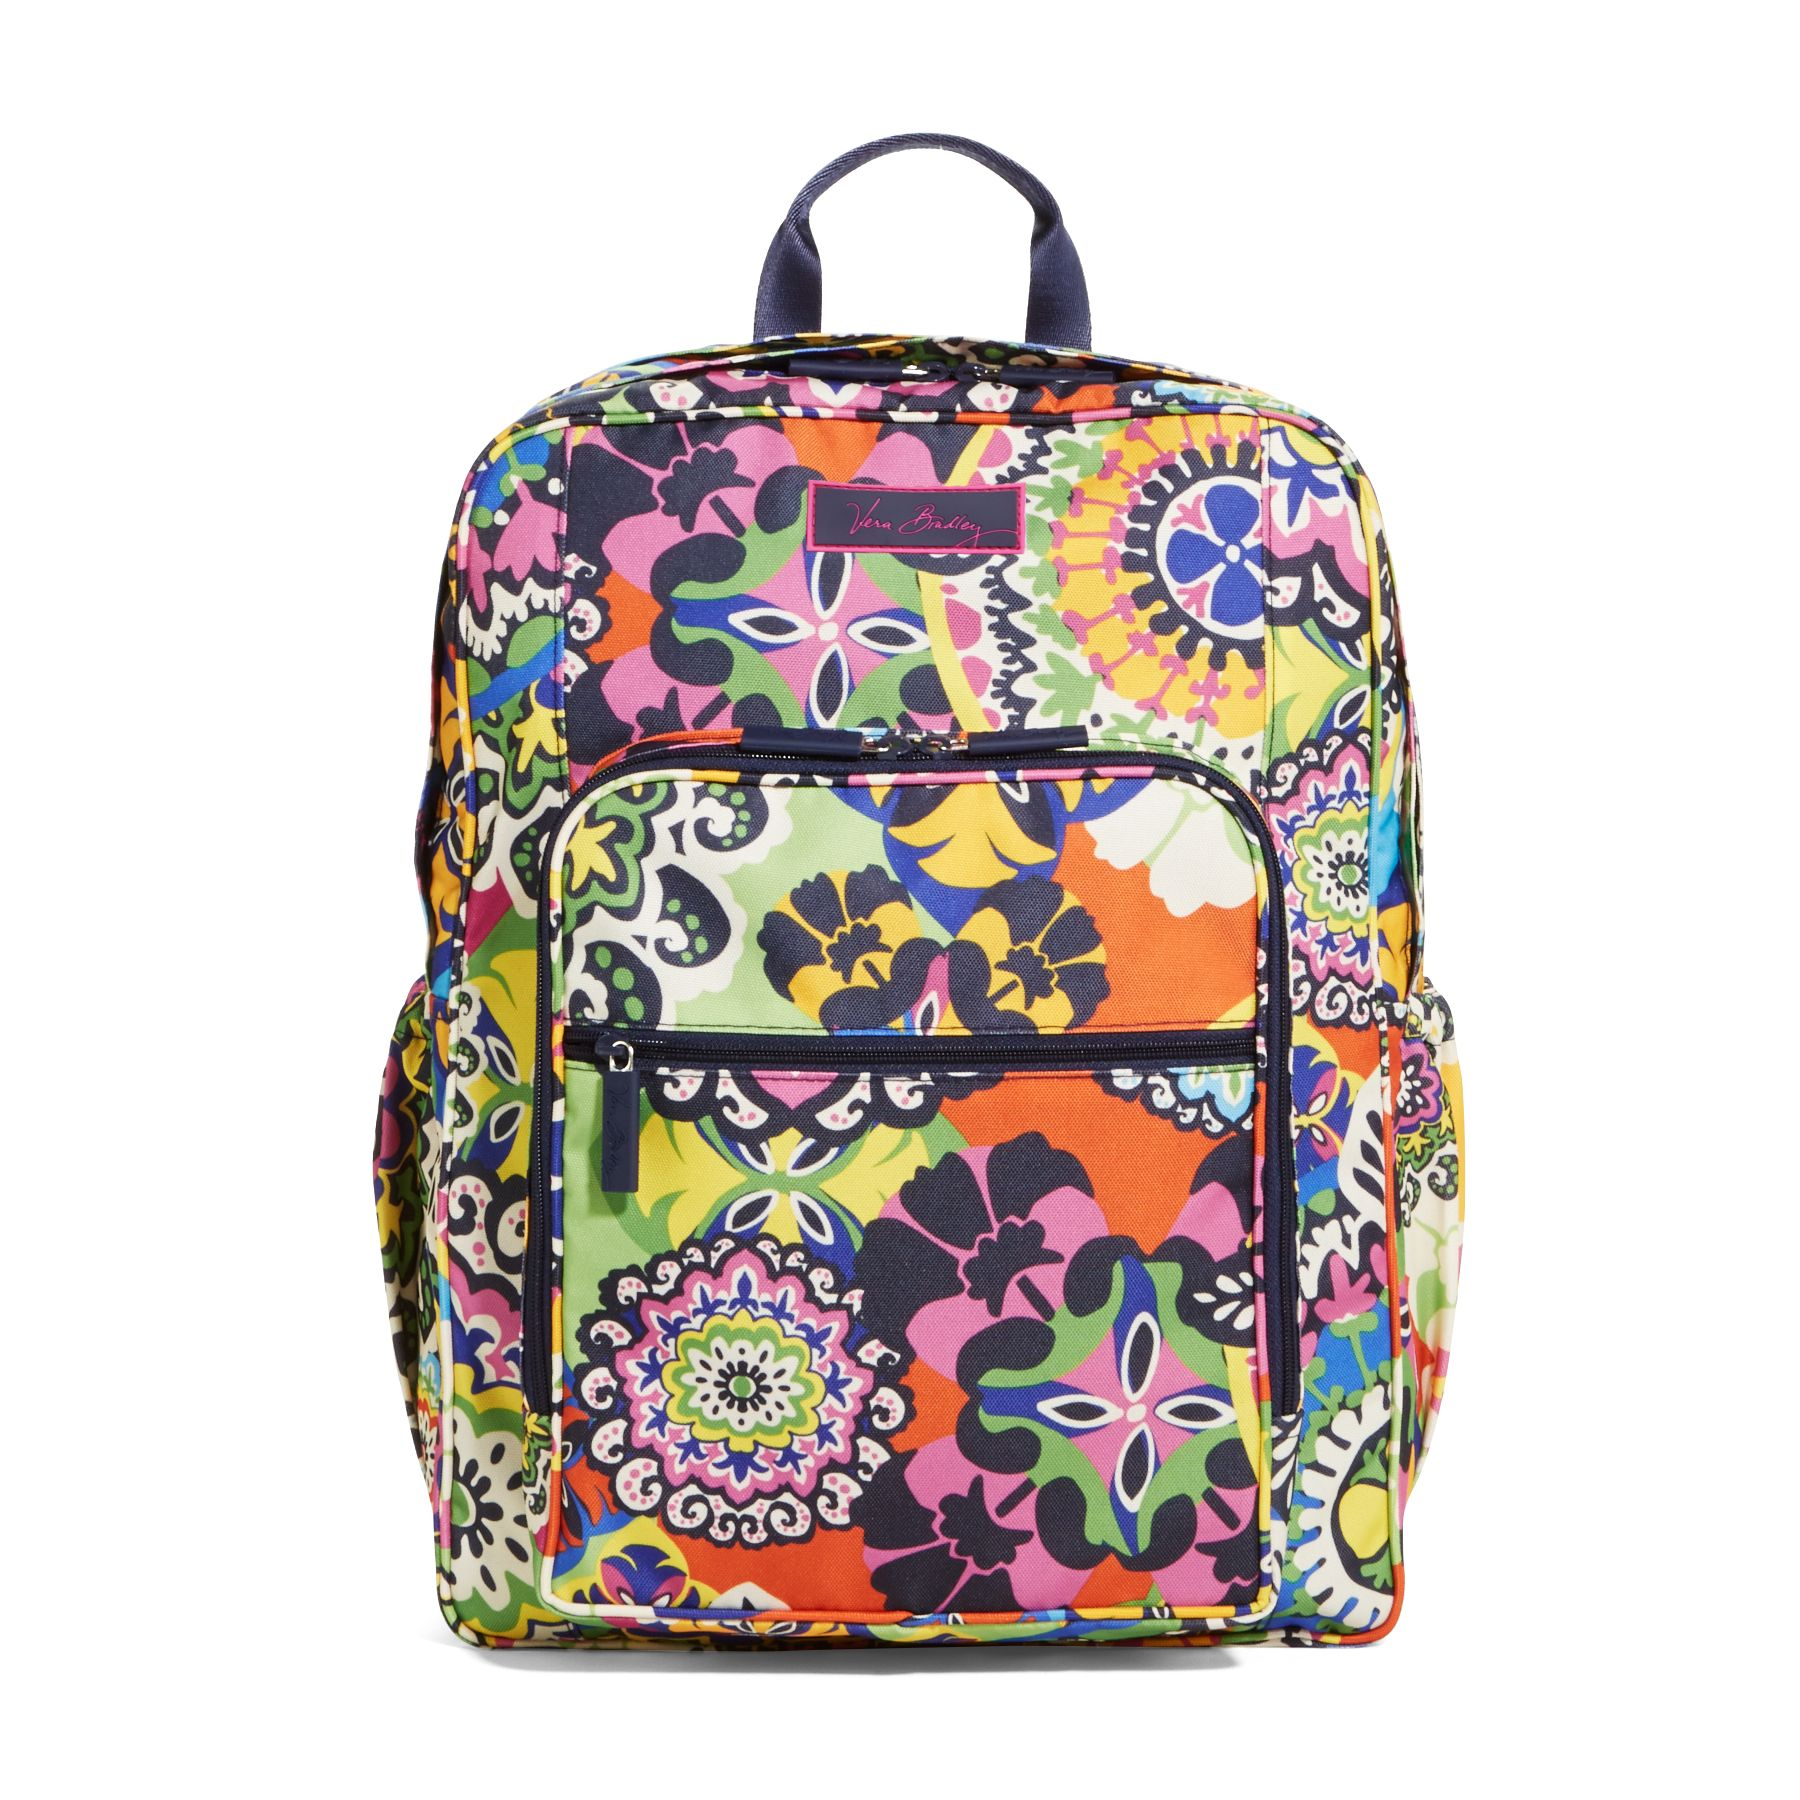 Vera Bradley Lighten Up Large Backpack in Rio